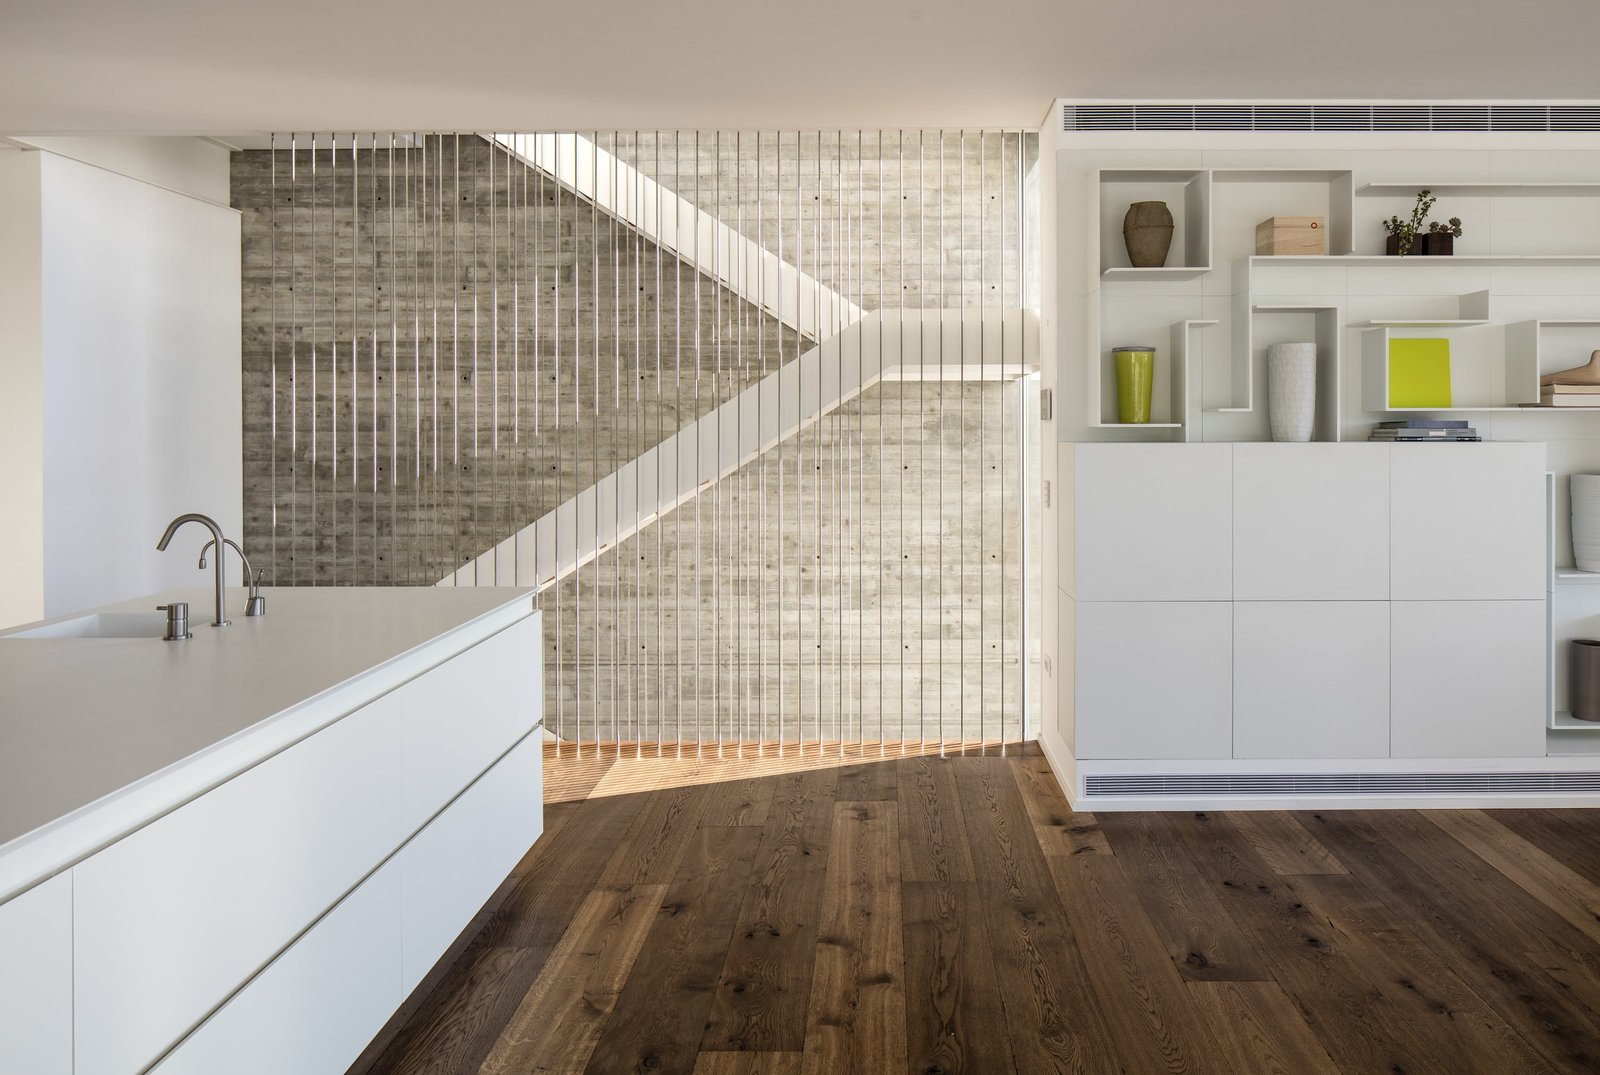 The staircase goes through the center of the house, pictured here adjacent to the open plan kitchen/living area.